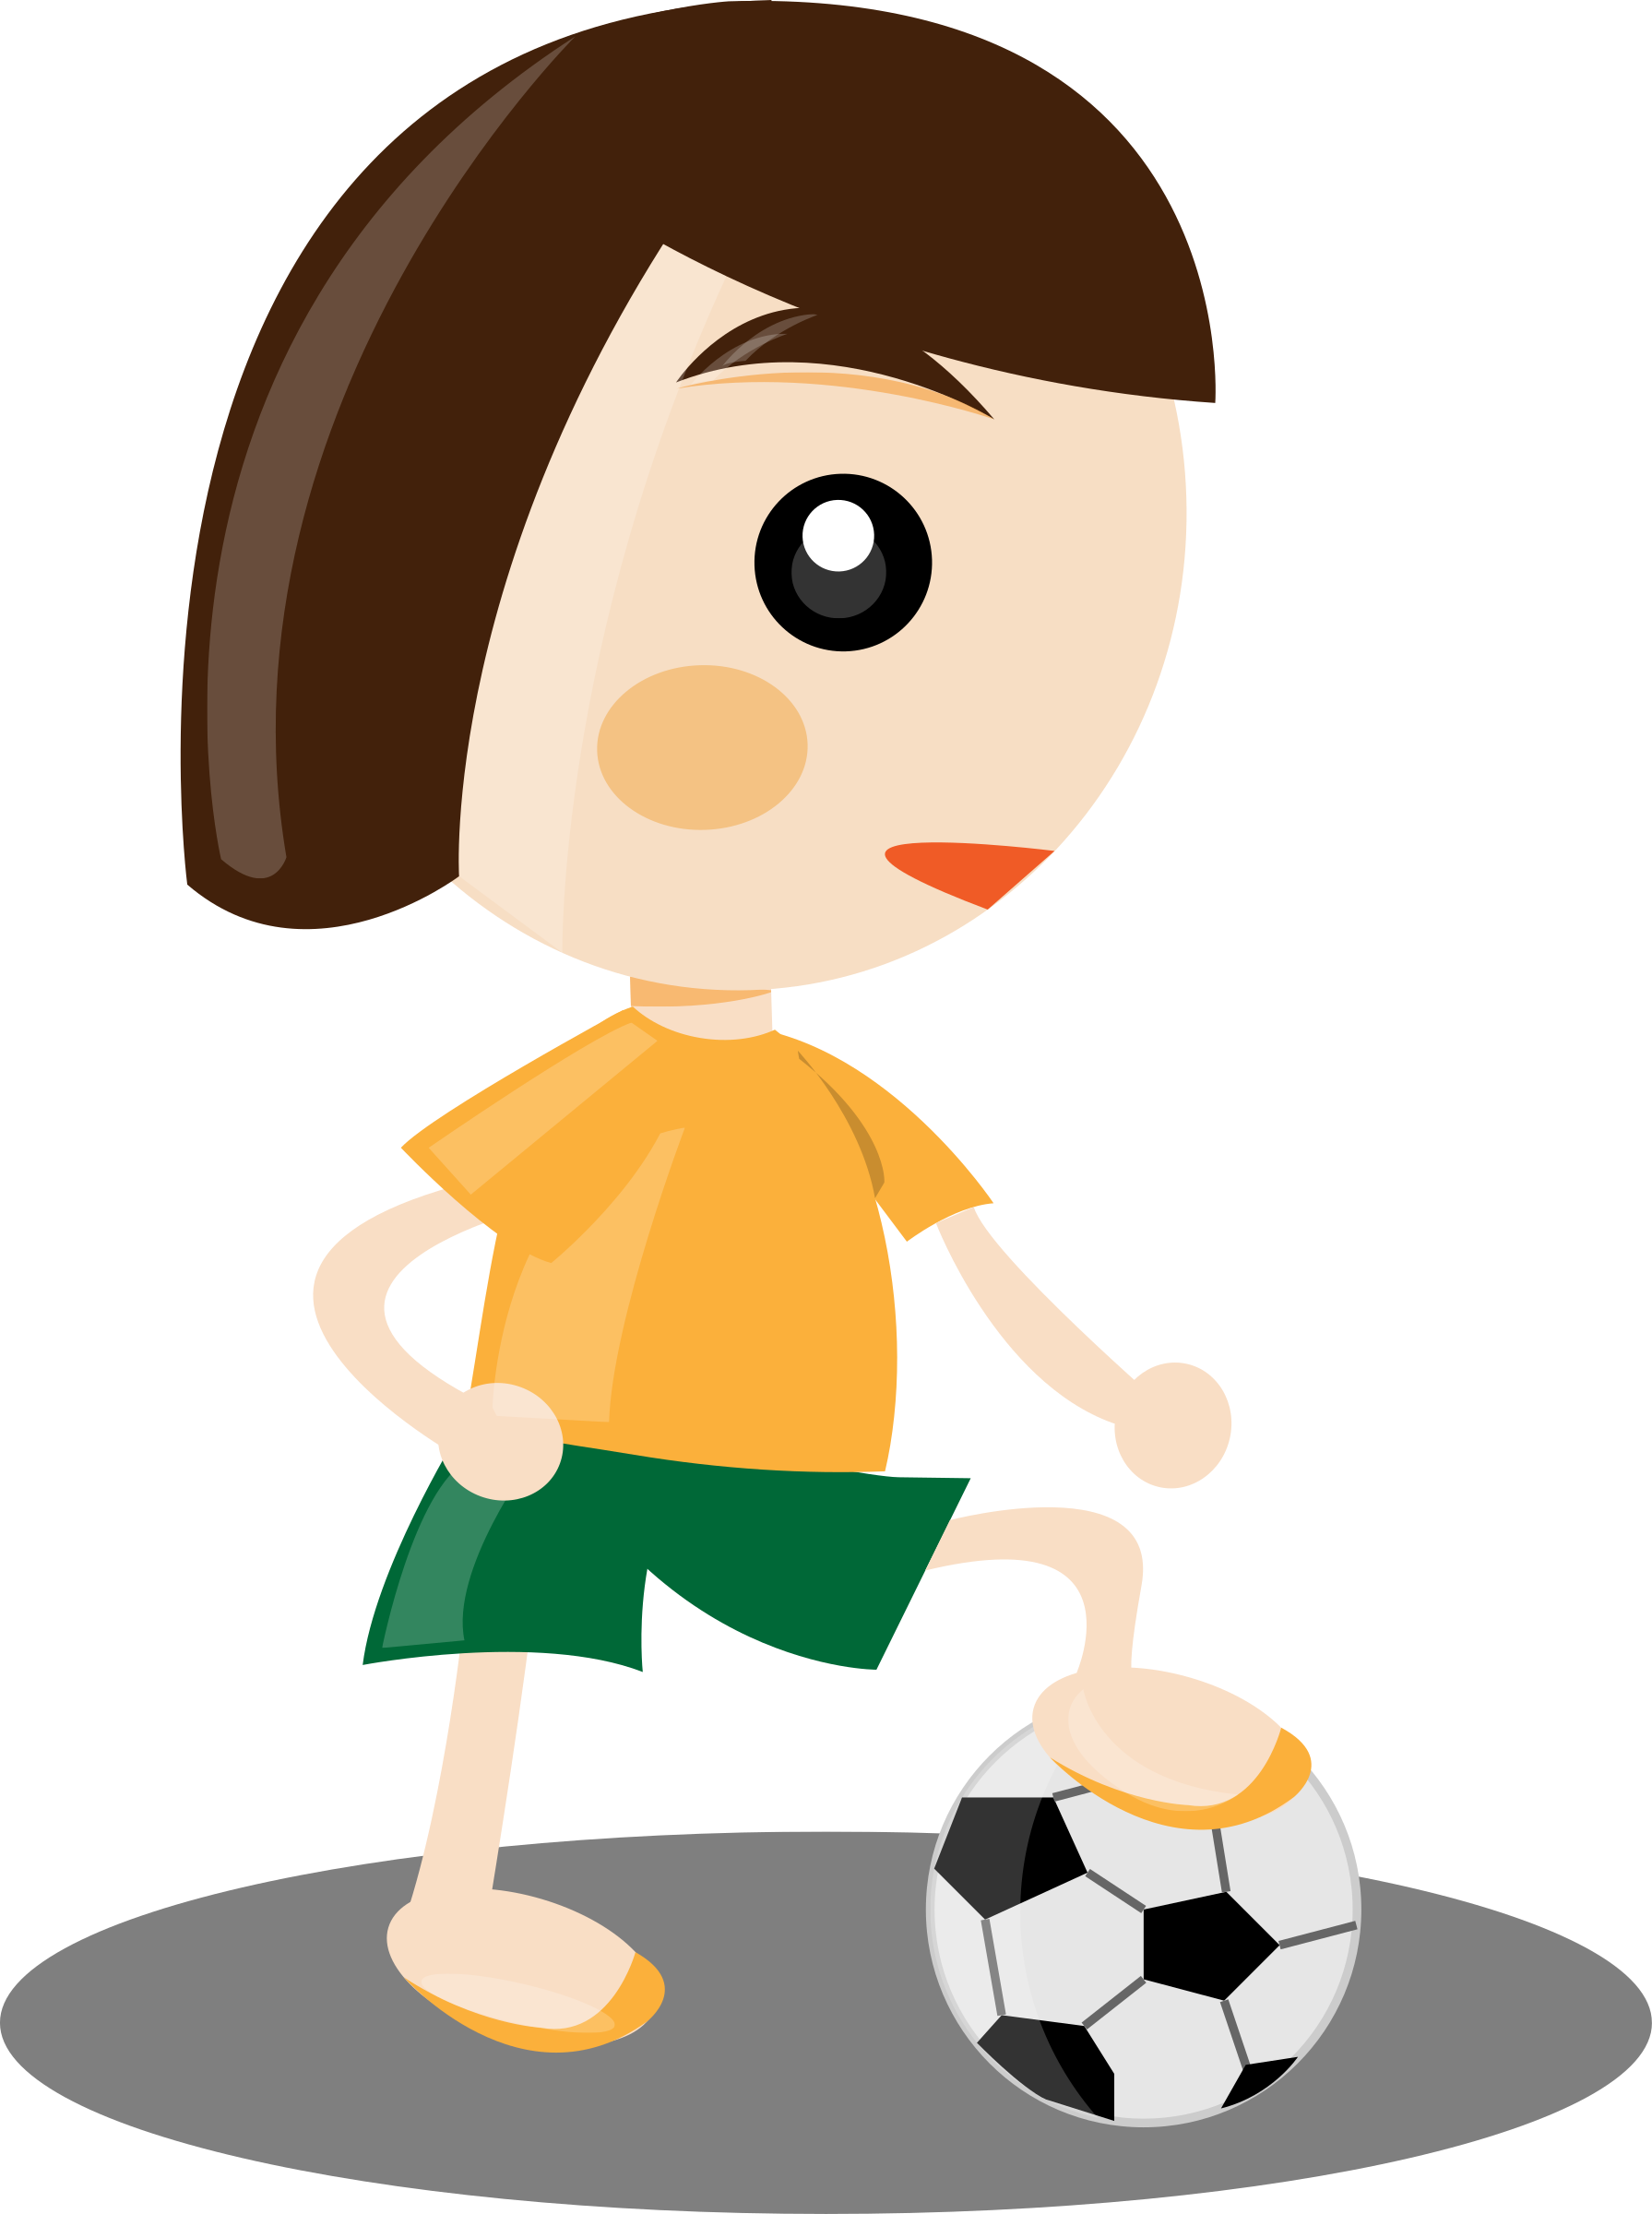 Girl sports at getdrawings. Girls clipart cricket